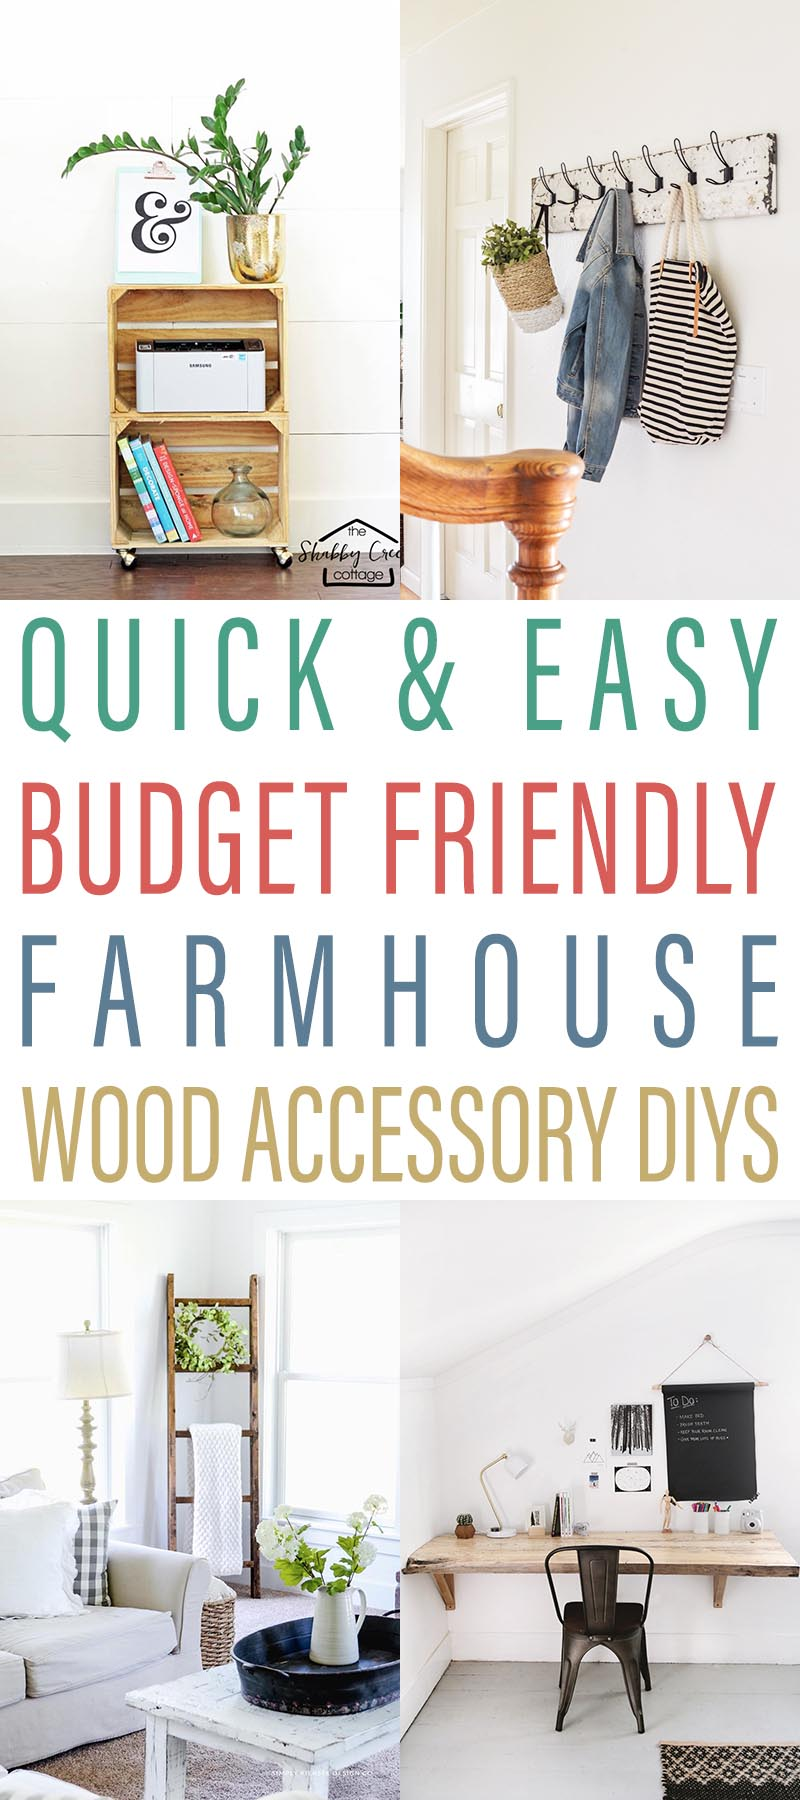 Quick & Easy Budget Friendly Farmhouse Wood Accessory DIYS